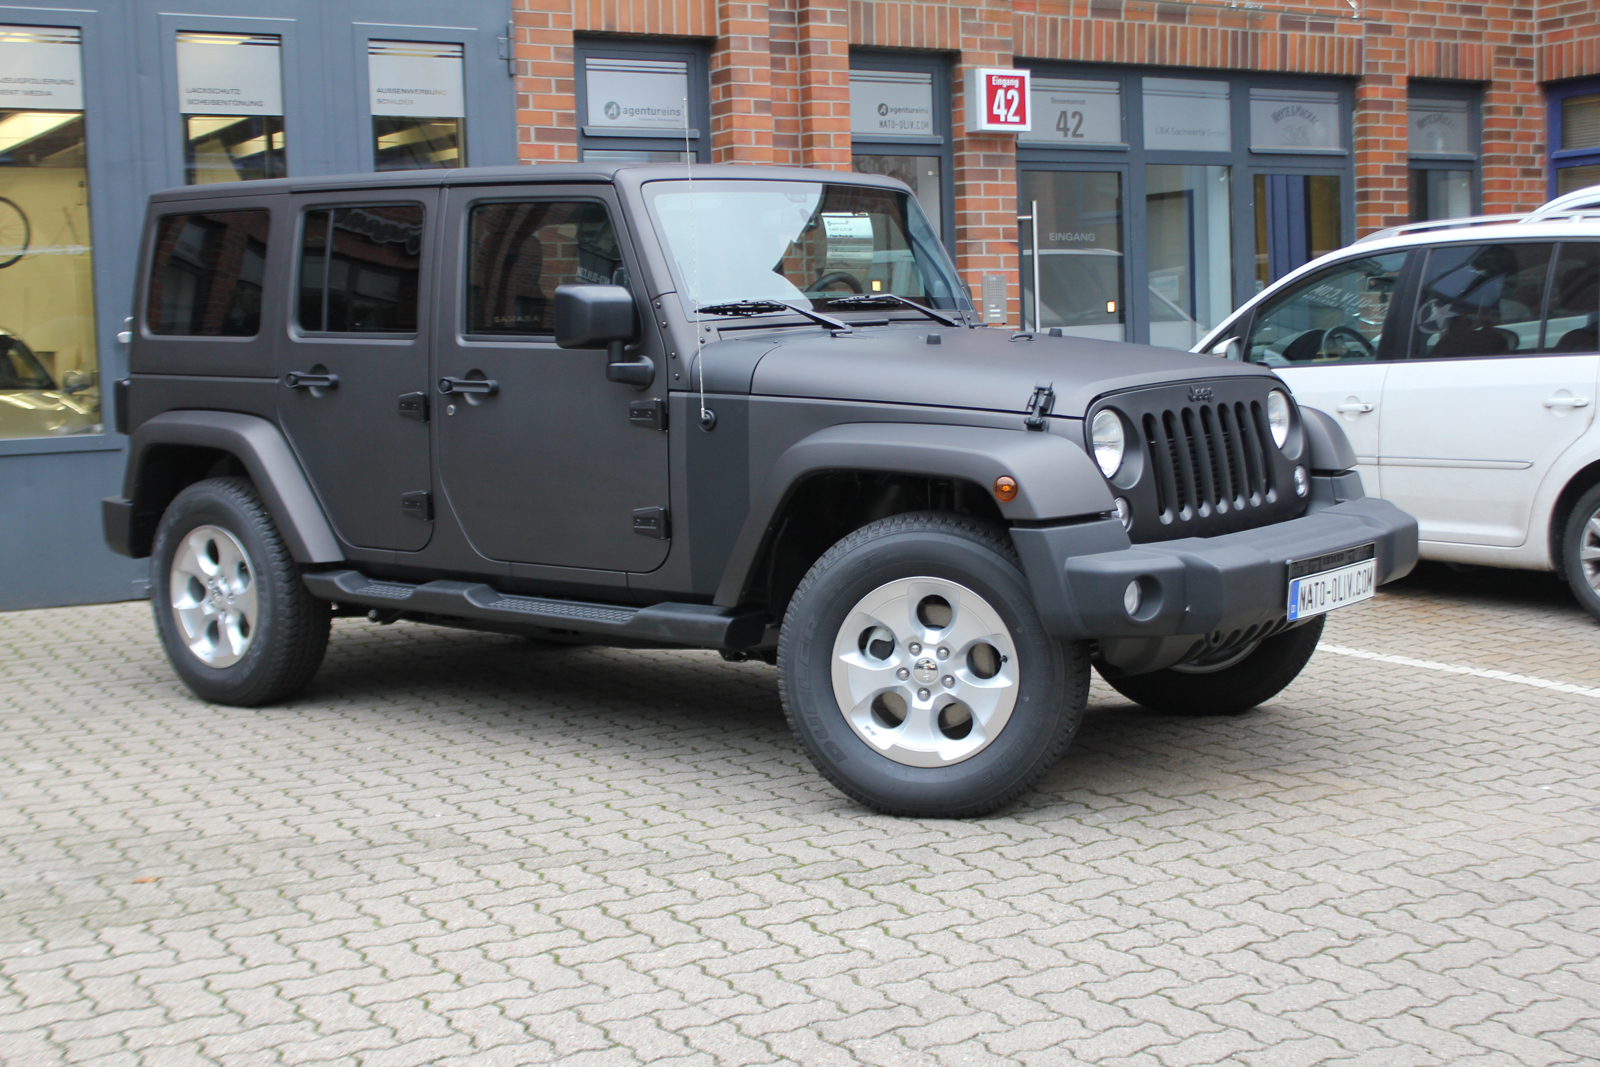 Auto Folierung Car Wrapping Jeep Wrangler Folierung Schwarzbraun Matt Metallic